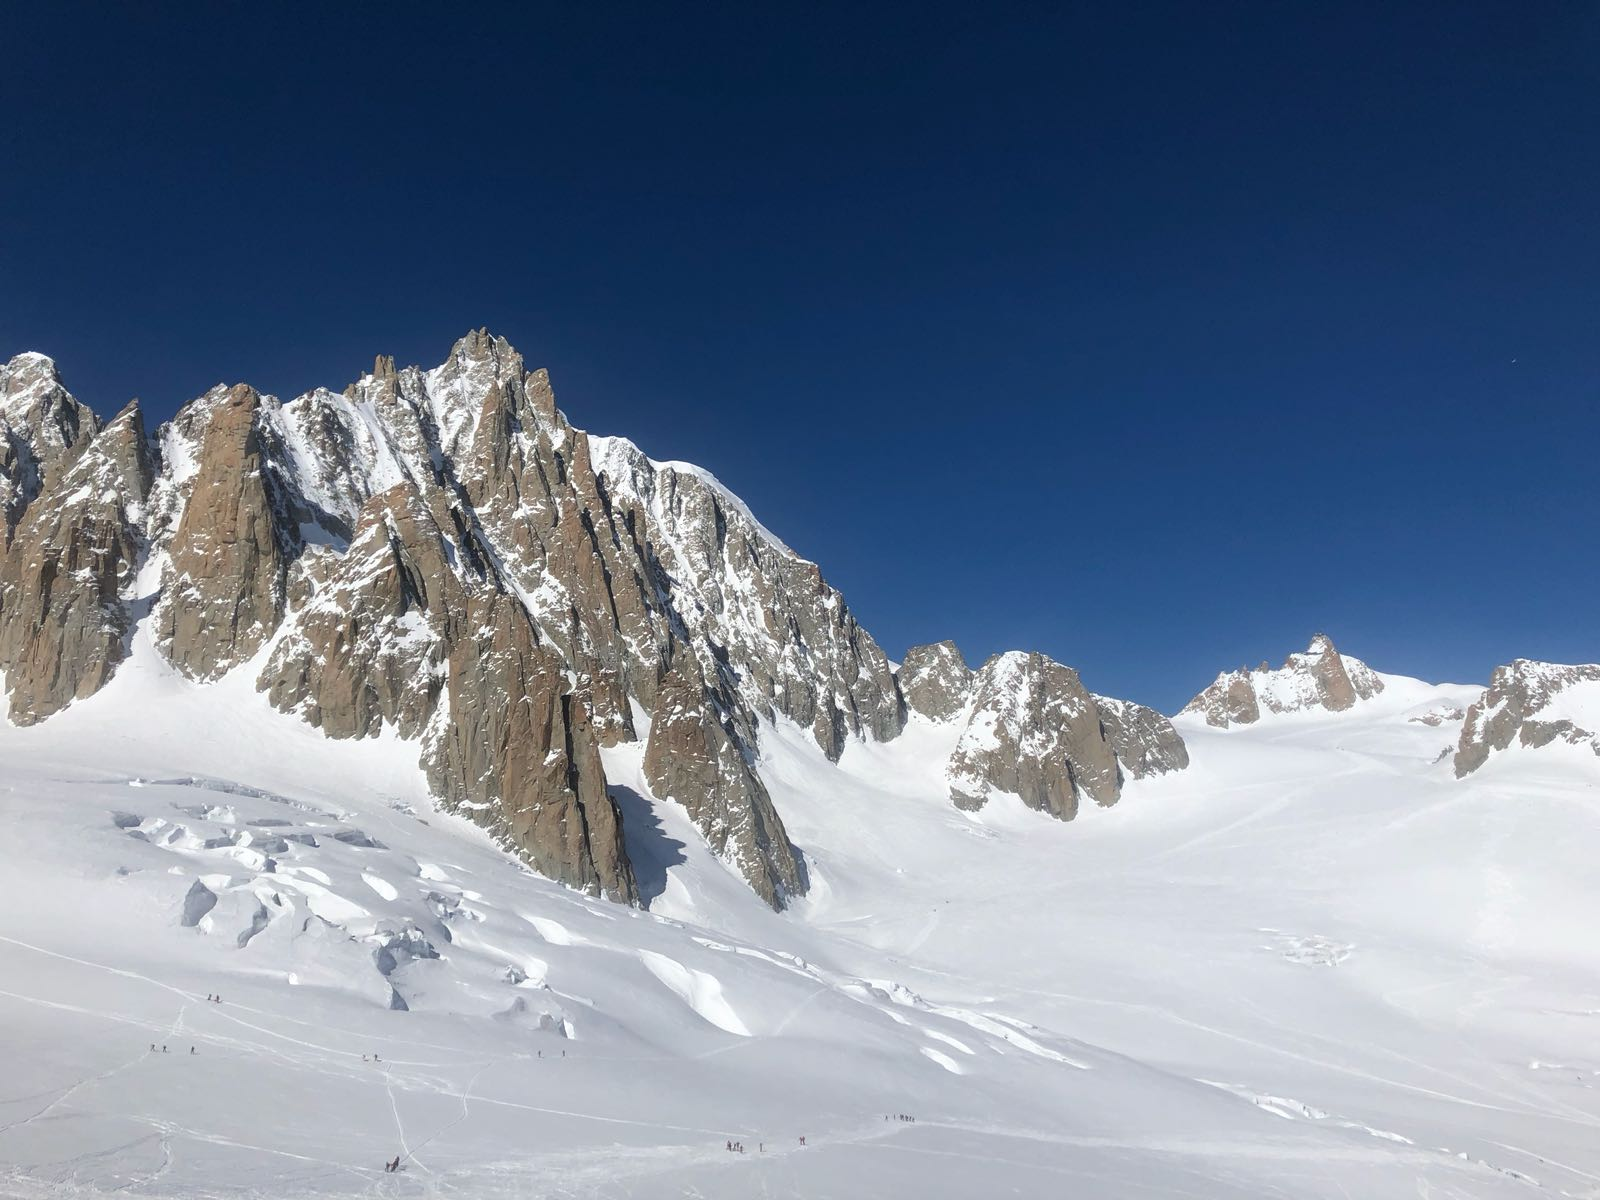 vallee blanche guide alpine proup (67)